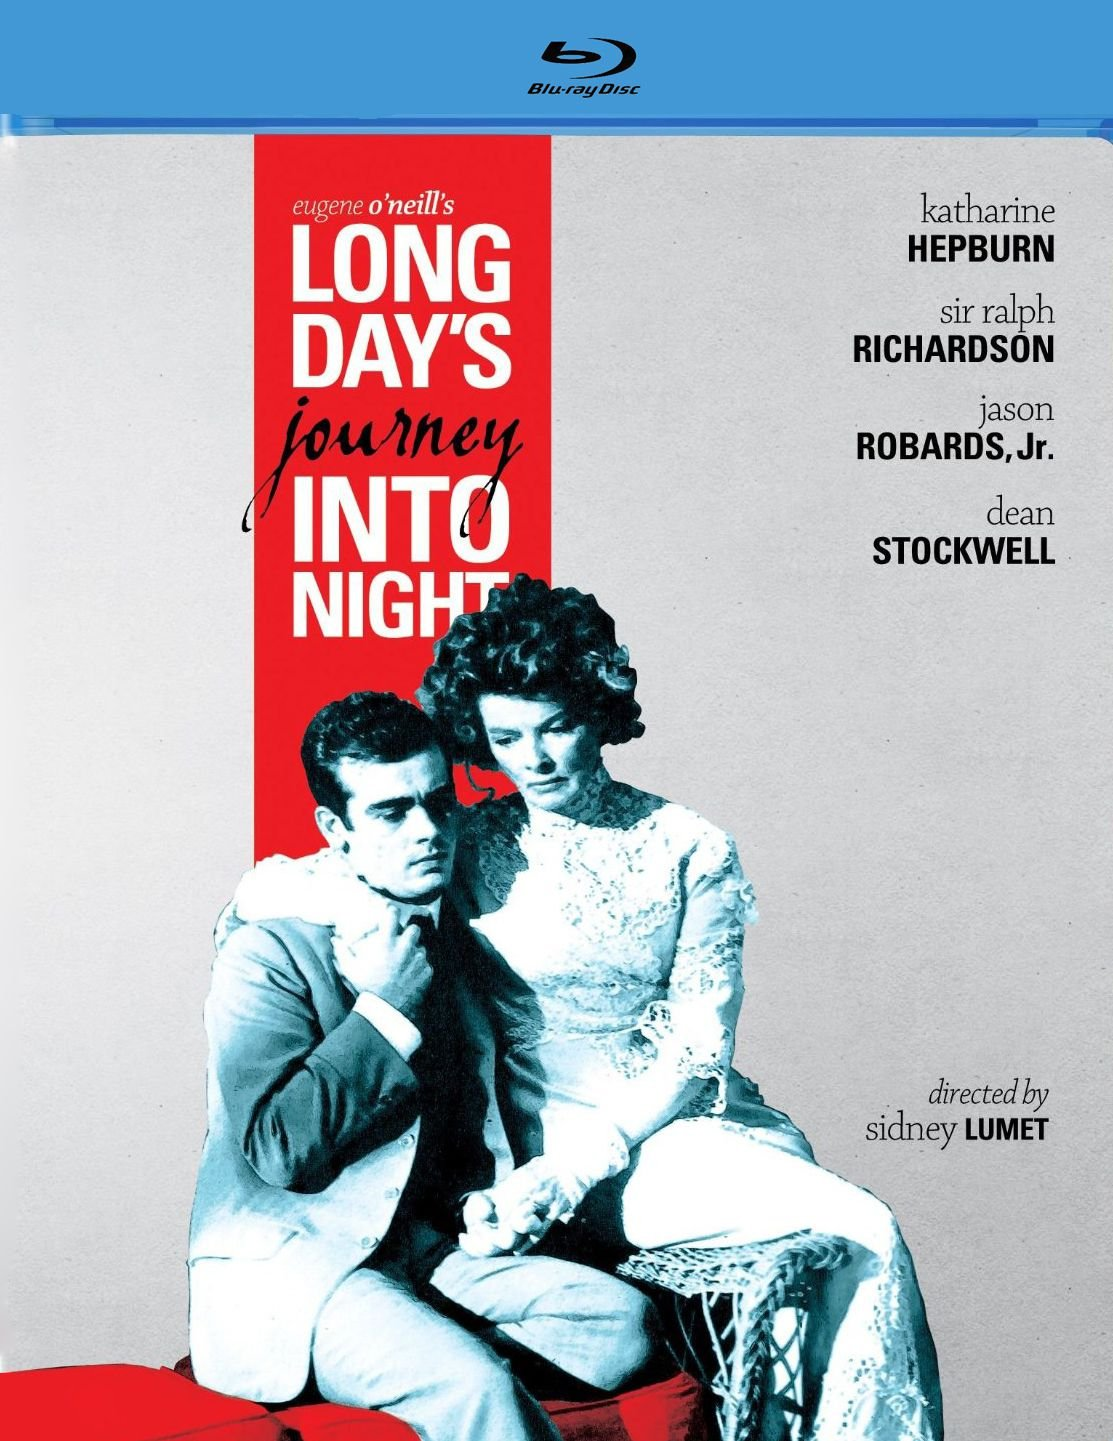 the theme characterization and style of eugene oneils play long days journey into the night Long day's journey into night is faithfully adapted from eugene o'neill's semi-autobiographical play which is also his greatest work alive, and it deepens further upon katherine hepburn's prestige as a versatile accomplished actress since she again receives academy award nomination for it frequently i tackle into the issue of purist notion.